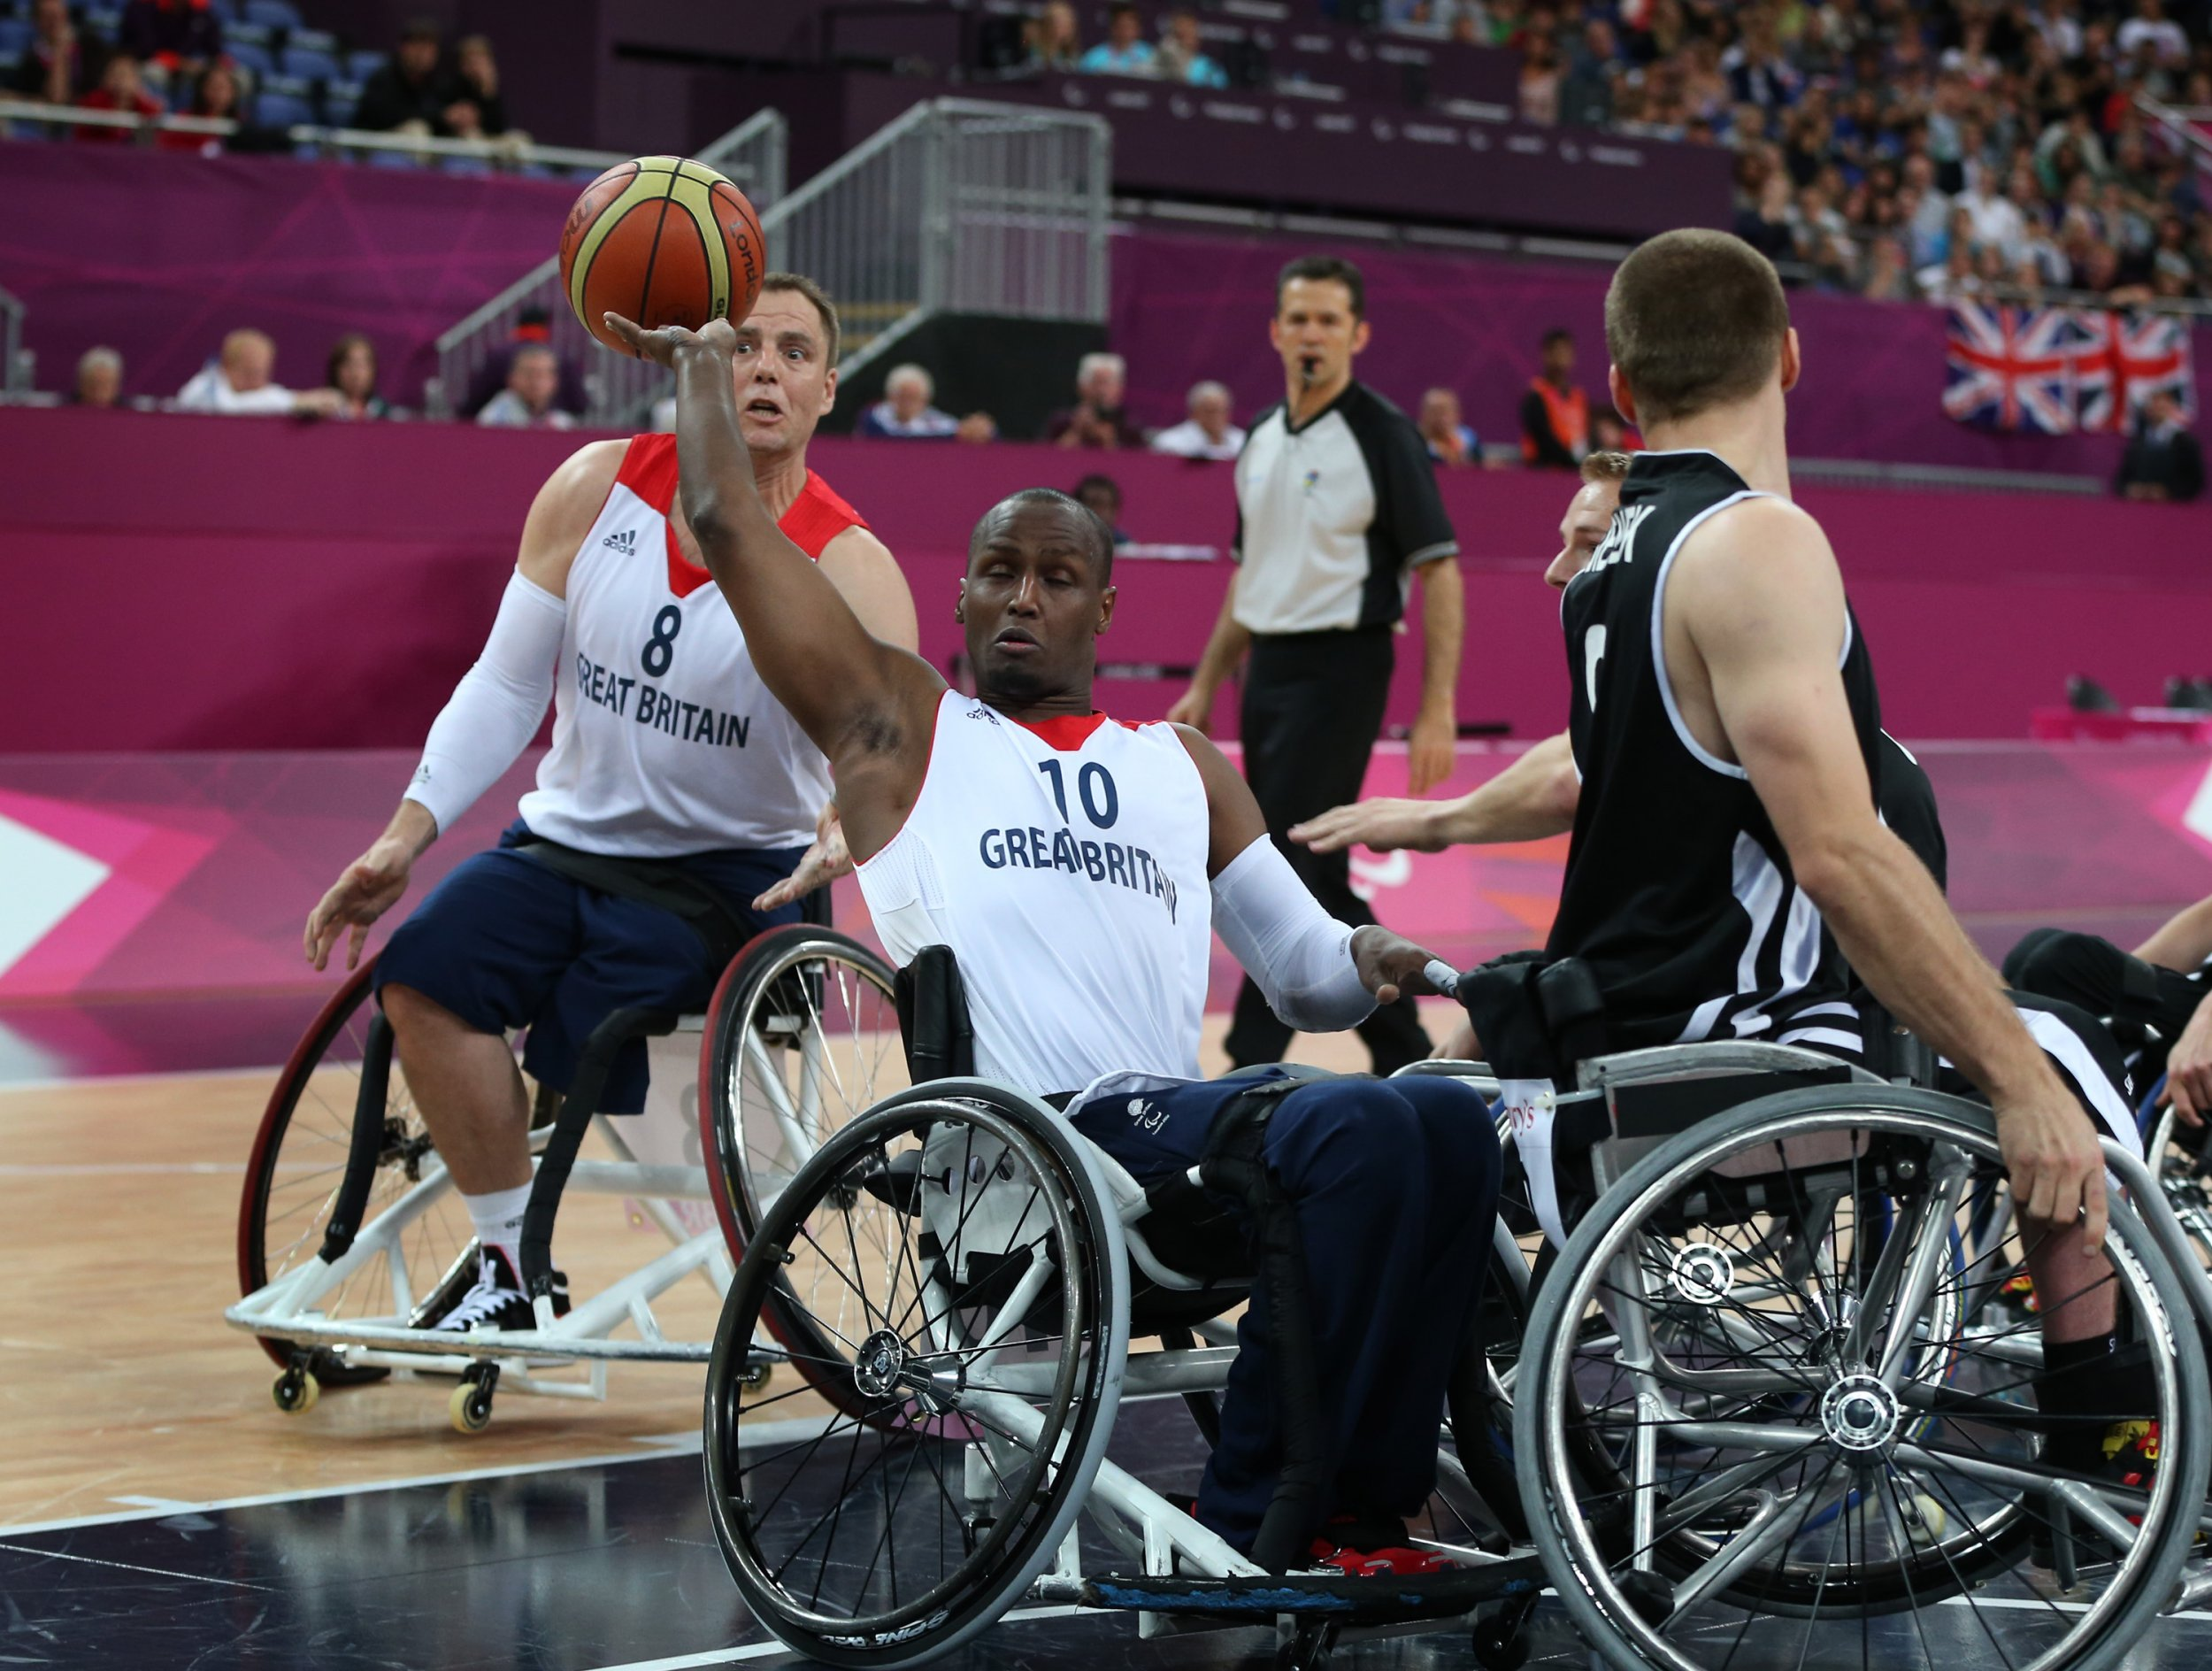 Abdi Jama controls a ball during the London 2012 Paralympics.